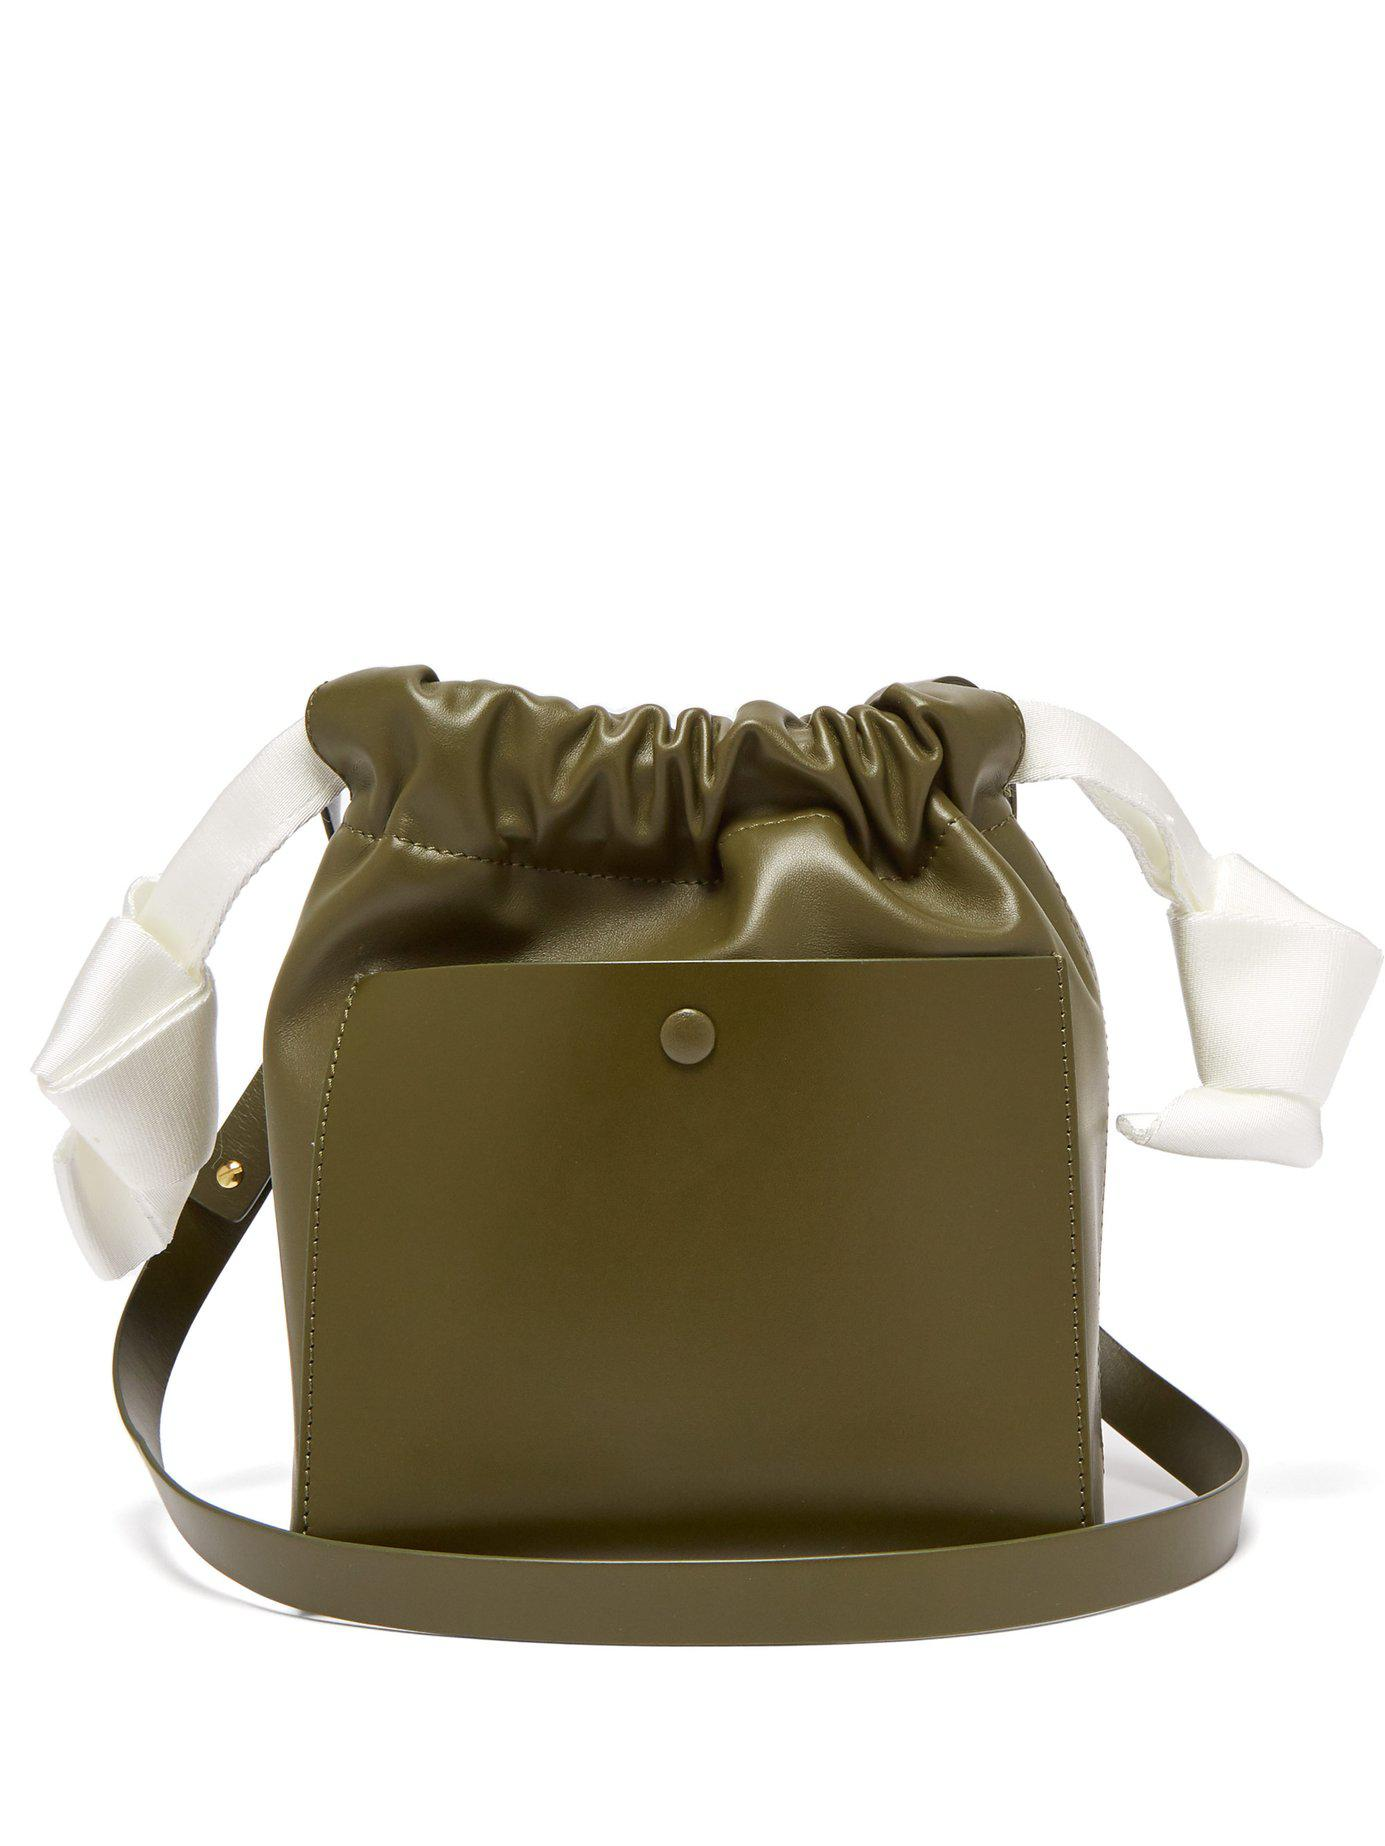 d0f8d19904b6 Lyst - Sophie Hulme Knot Leather Crossbody Bag in Natural